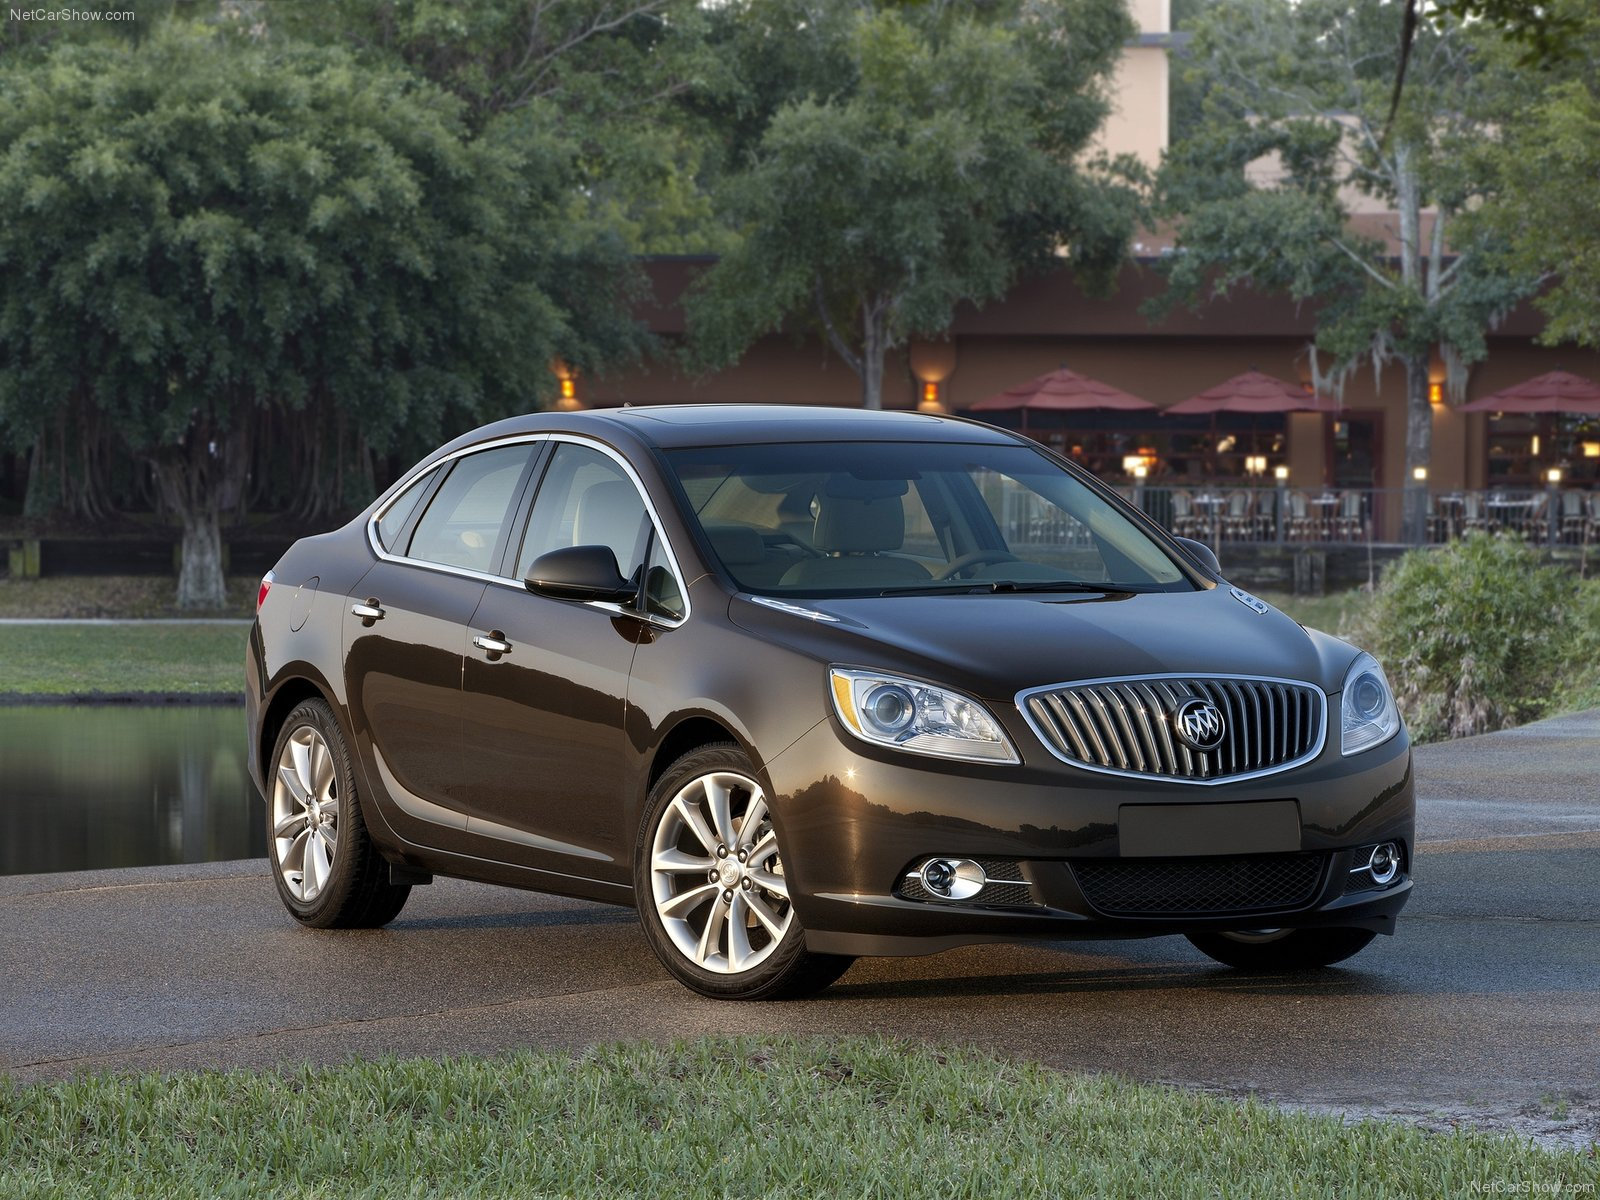 Buick Verano photo 77669